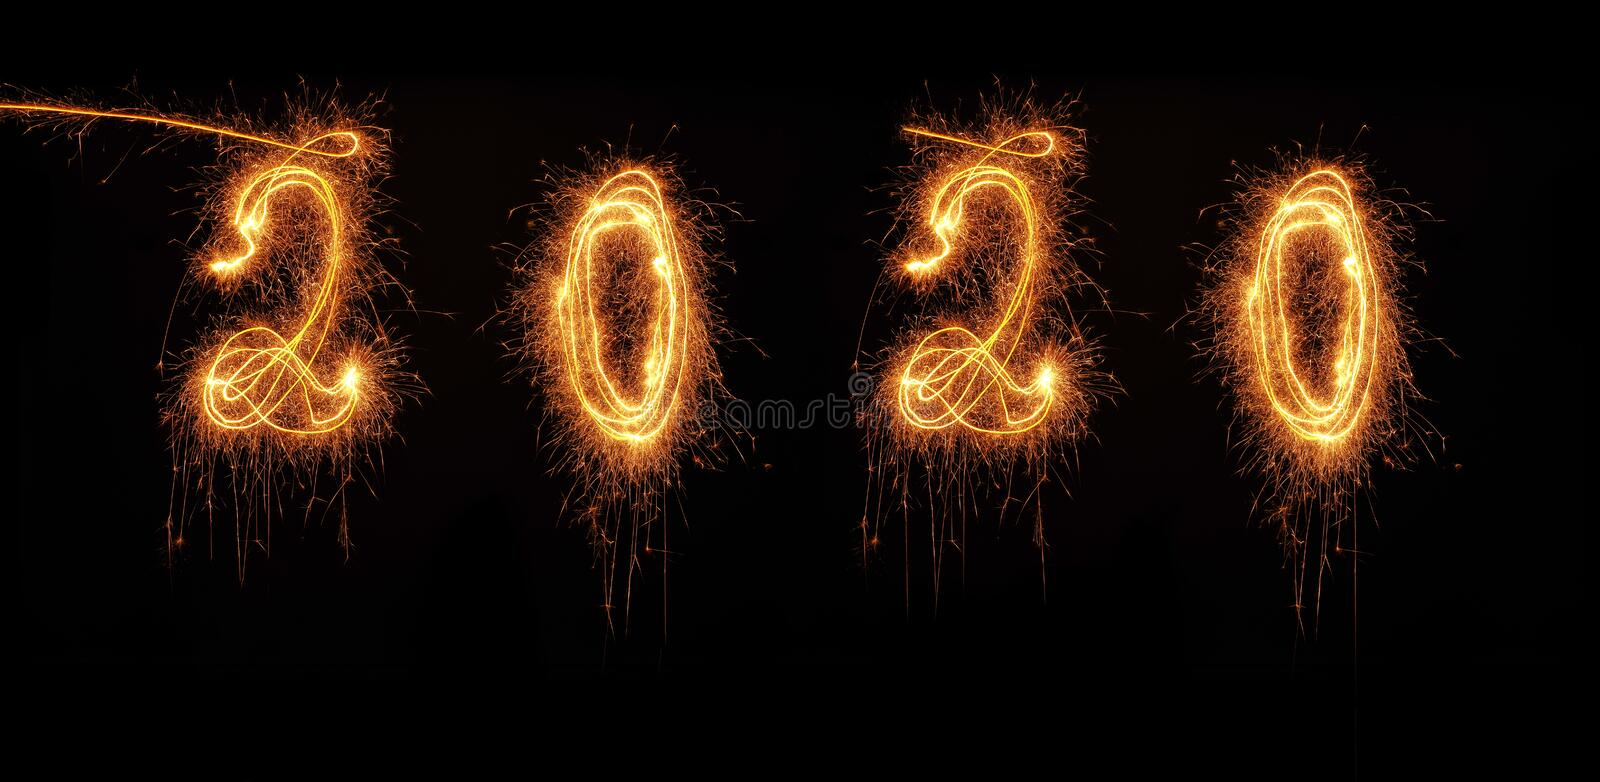 The year 2020 written with a sparkler on black background. New Years concept image stock photography